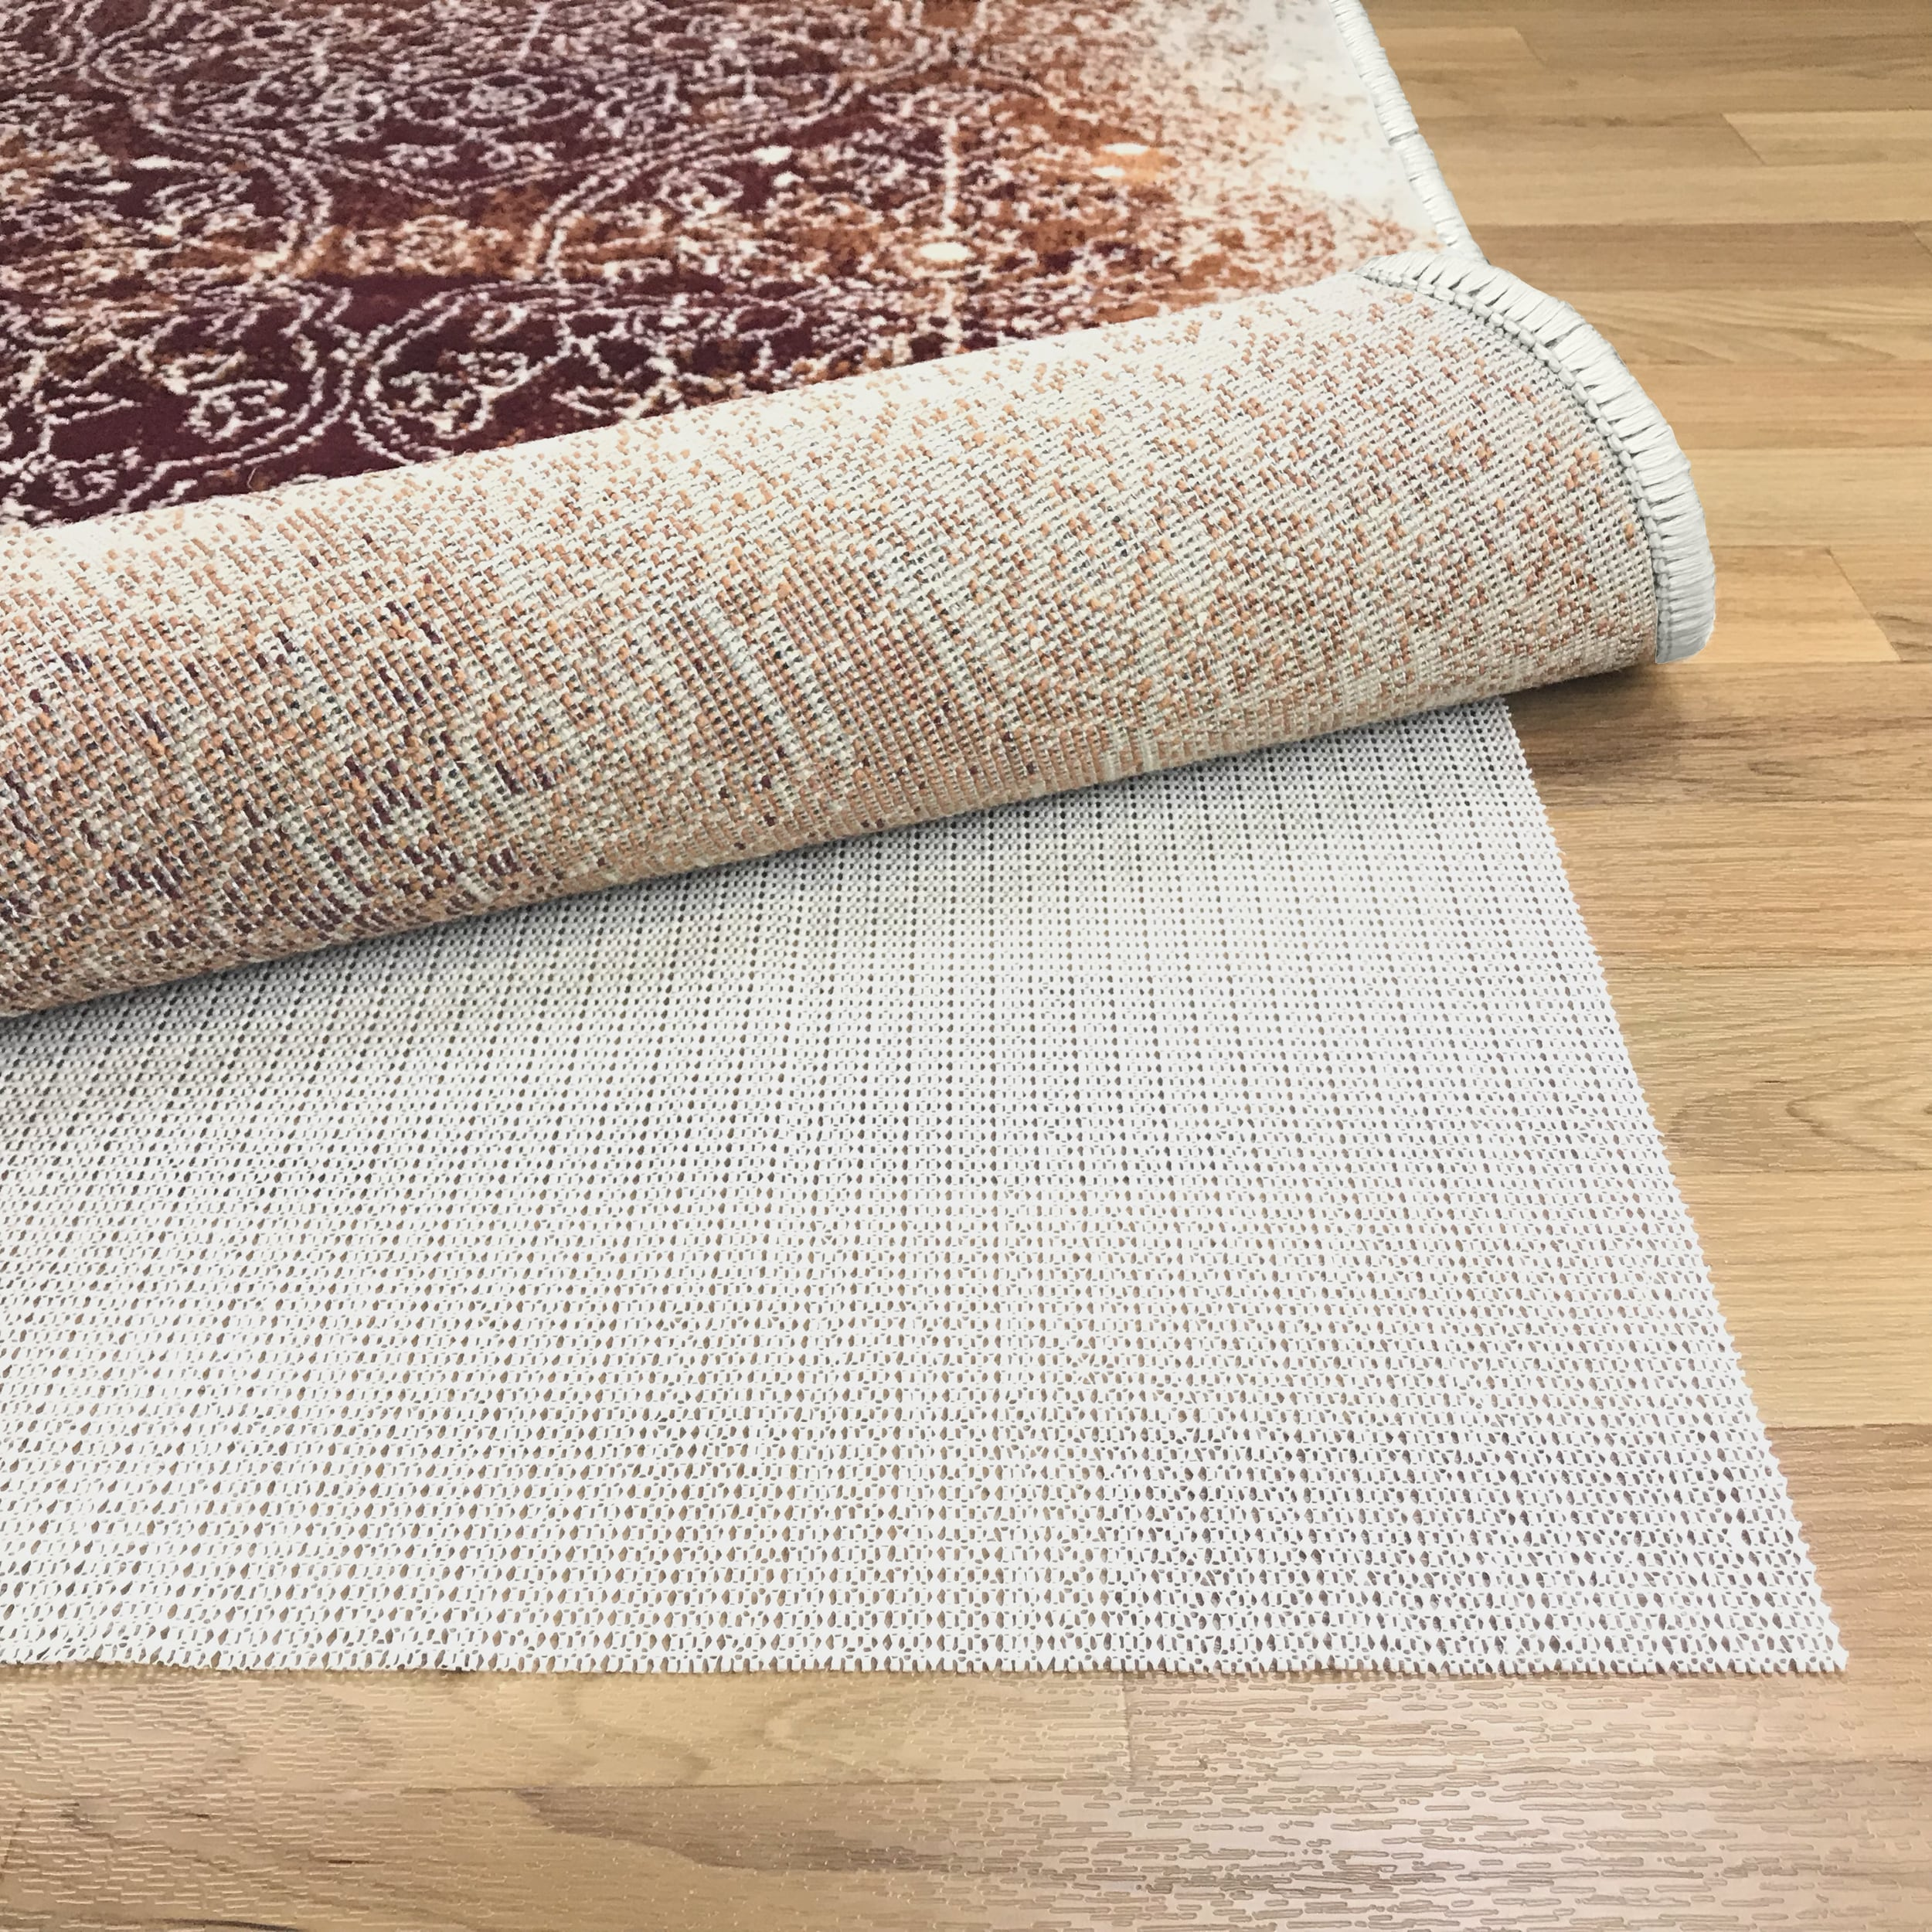 Grip-It Ultra Stop Non-Slip Rug Pad for Rugs on Hard Surface Floors 3' x 5'